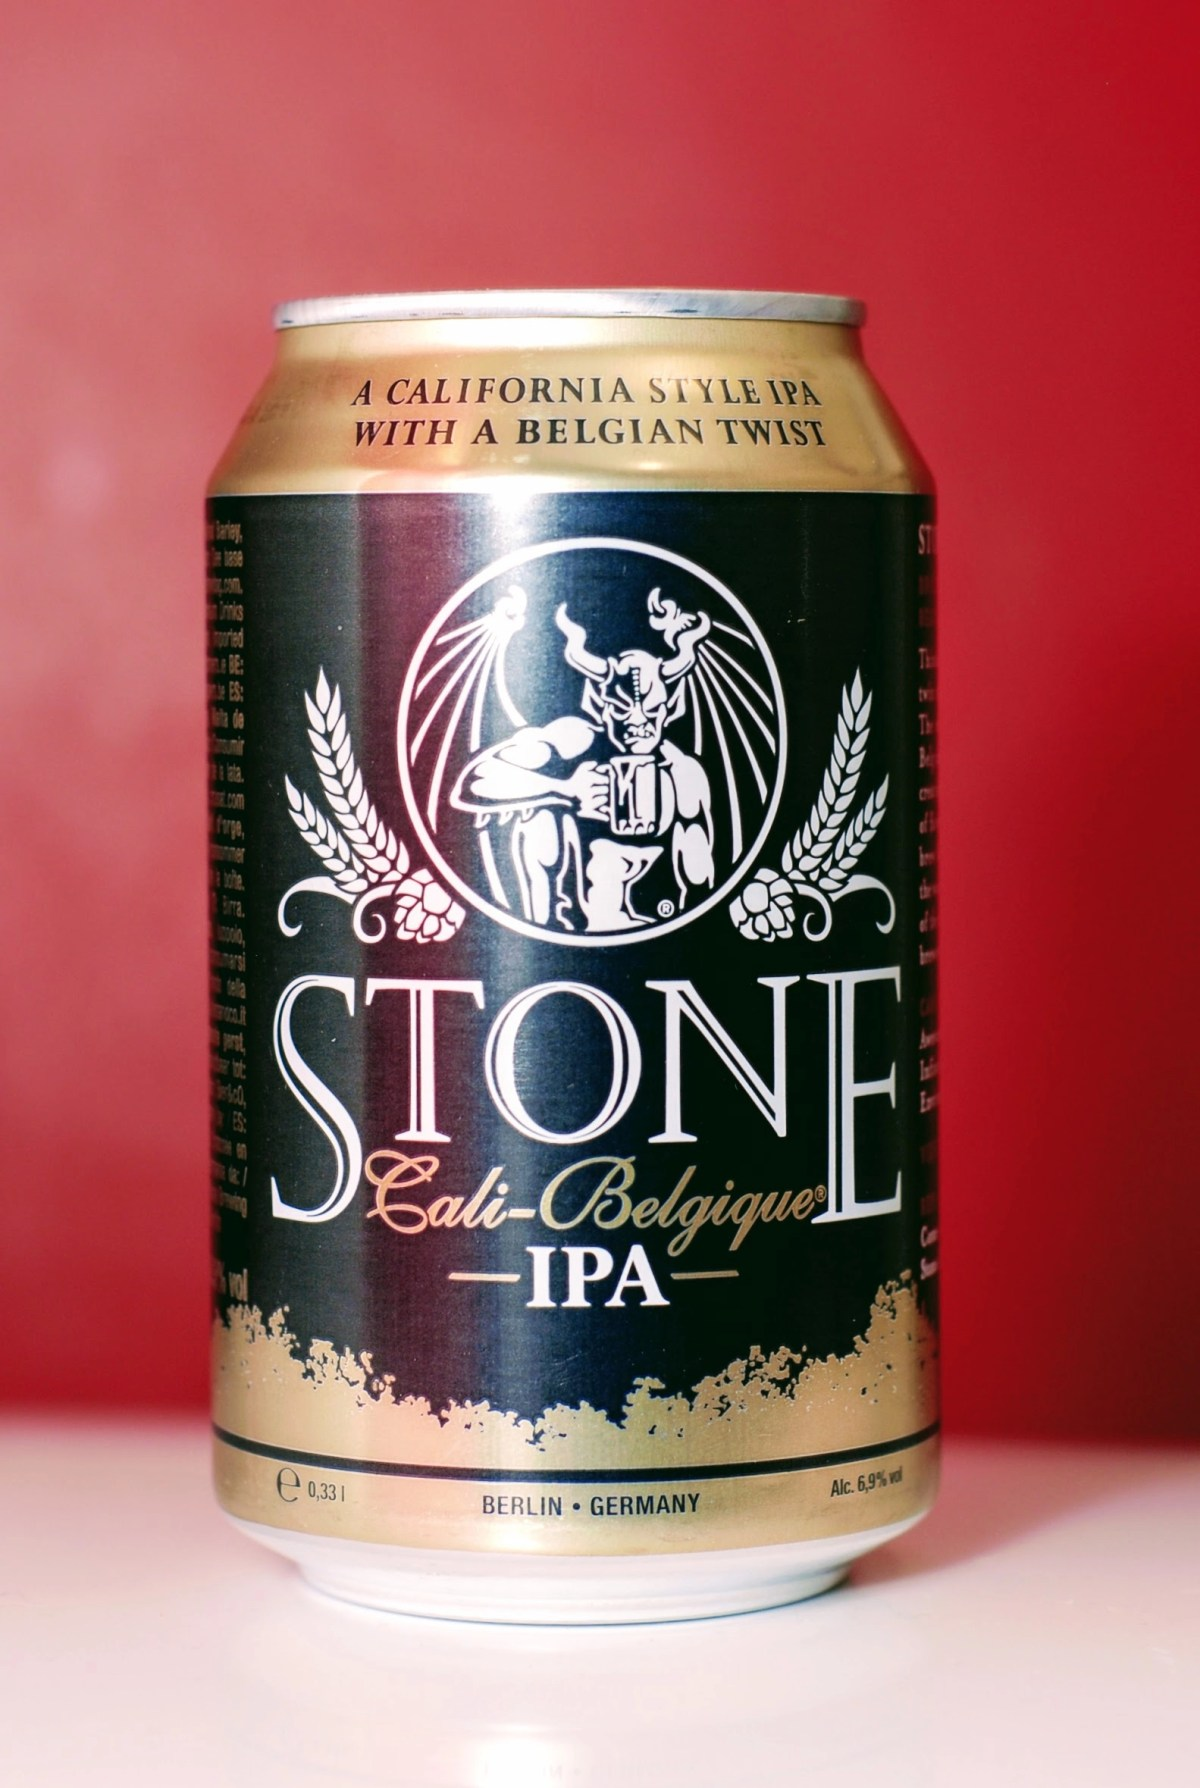 Stone Brewing, Cali-Belgique IPA